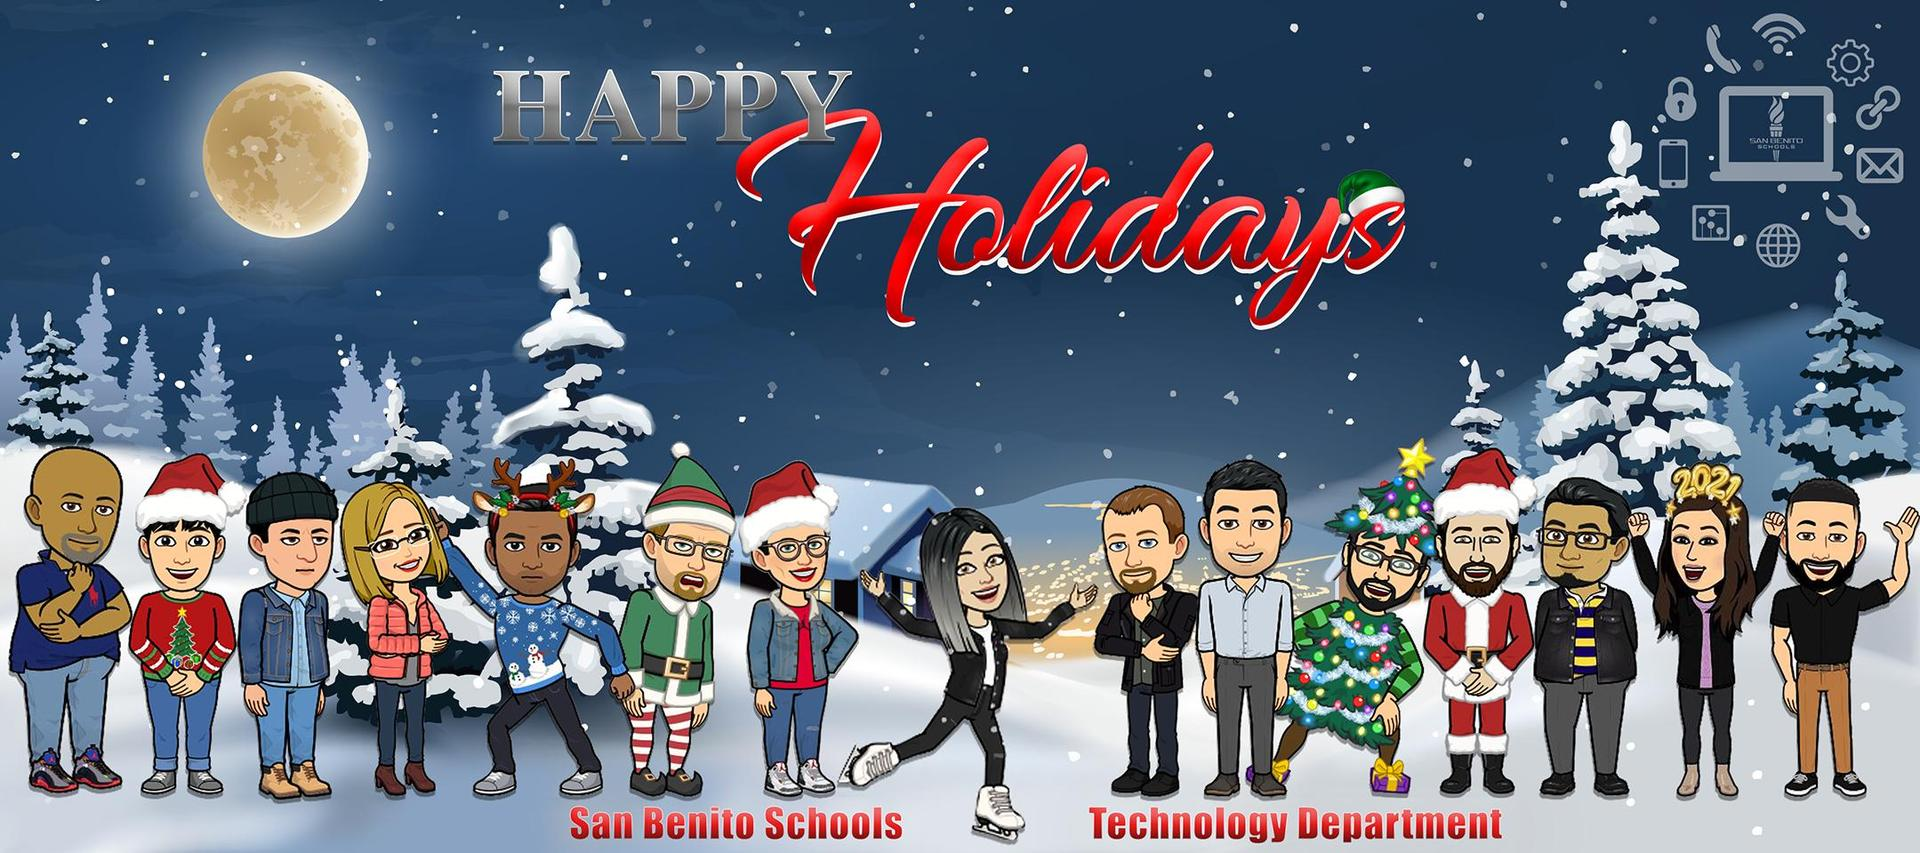 Happy Holidays from Technology Department